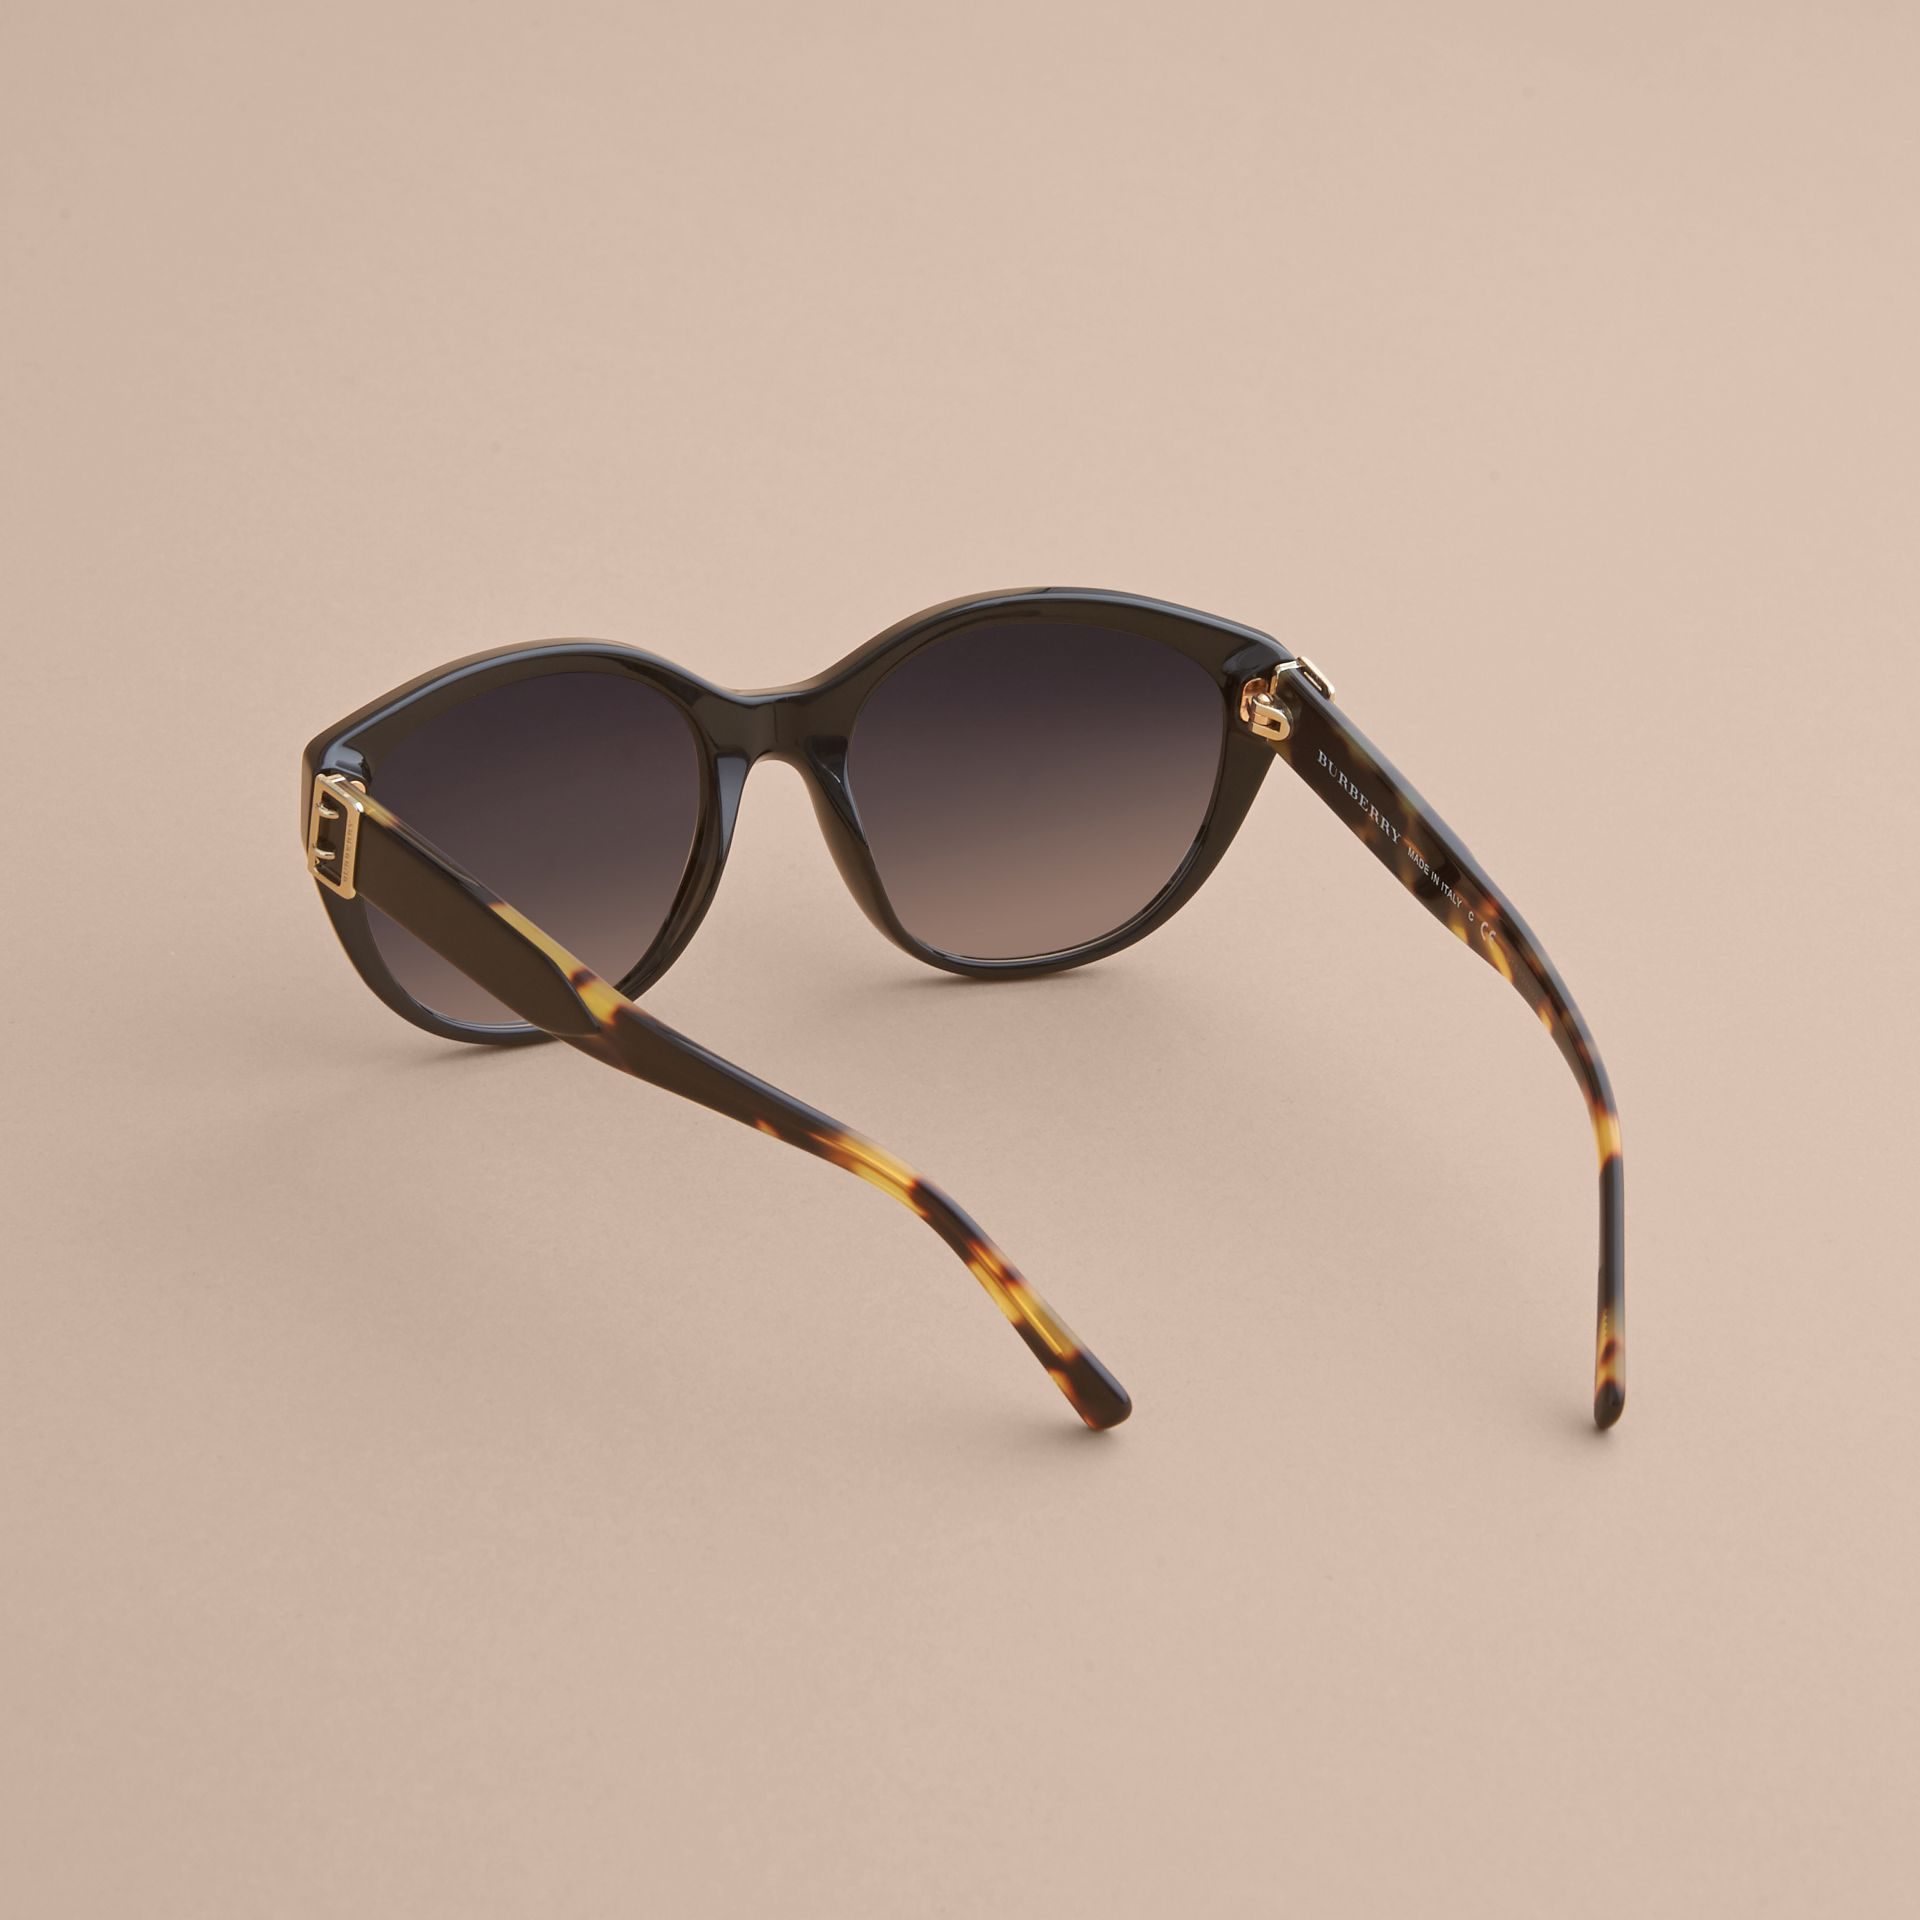 Buckle Detail Round Frame Sunglasses in Black - Women | Burberry Australia - gallery image 4